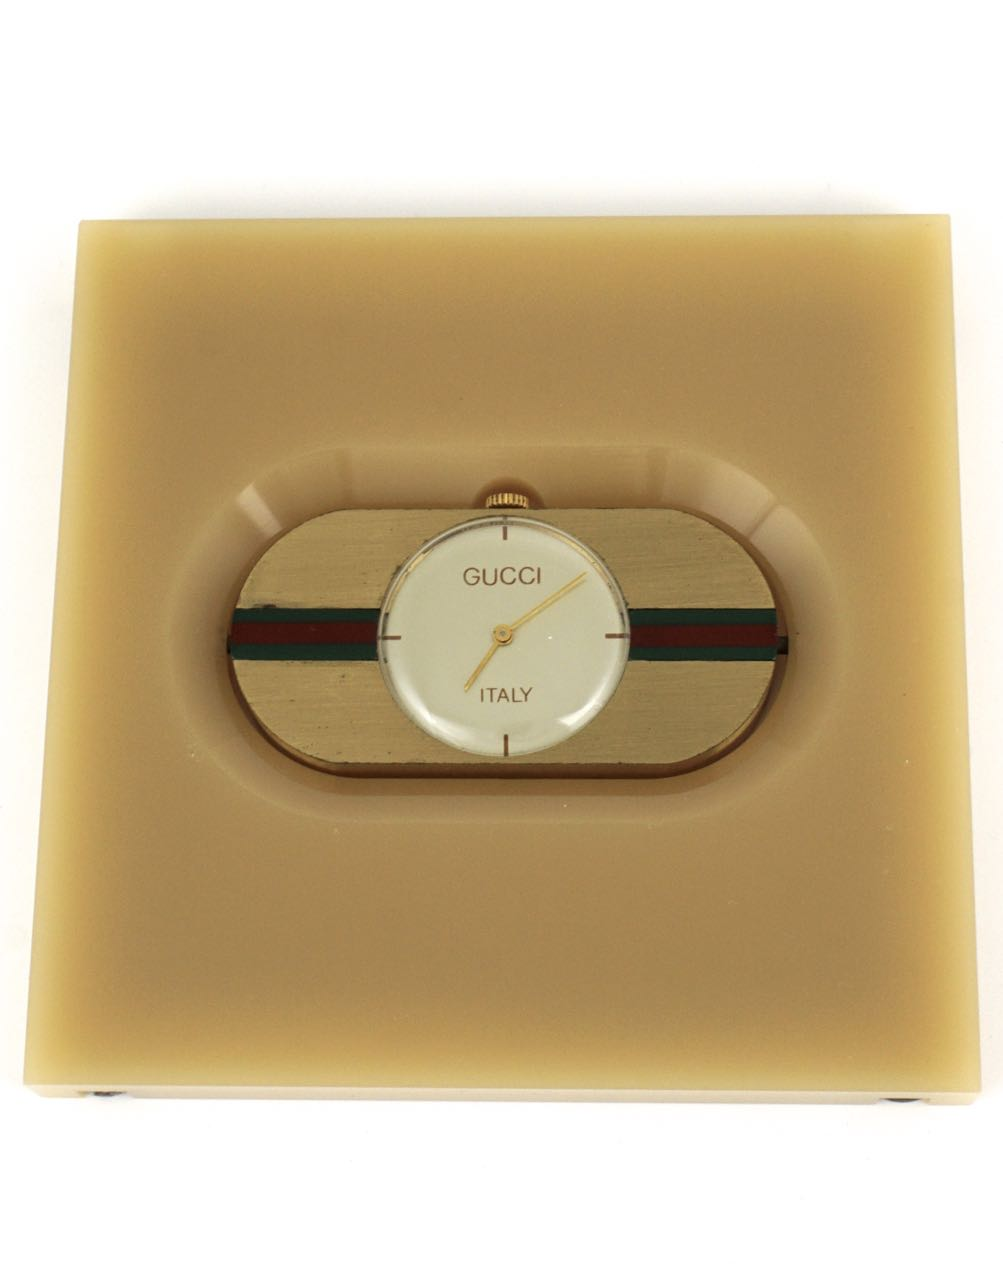 Vintage Gucci lucite and brass travel clock